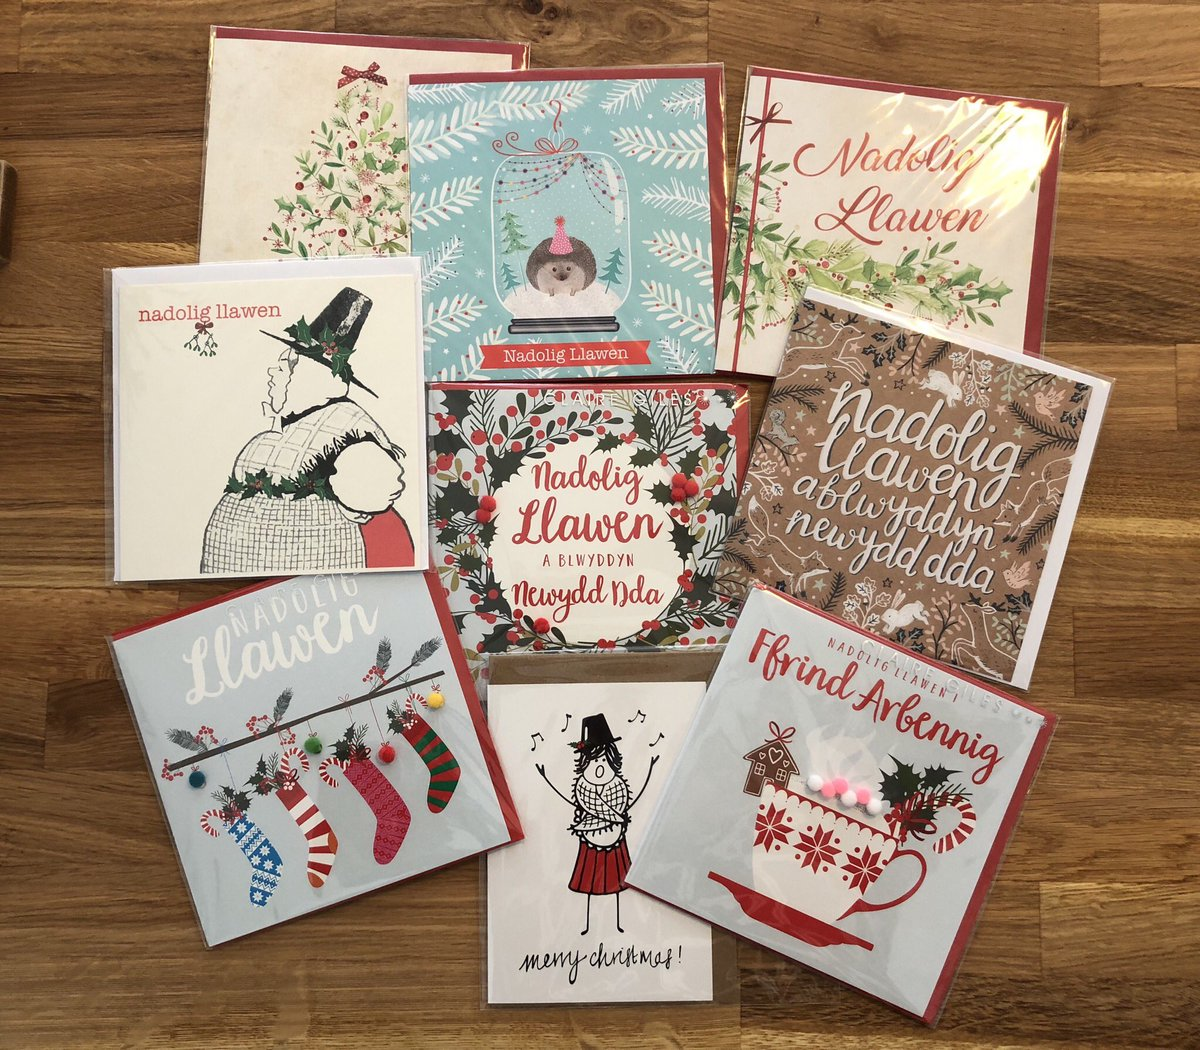 Homemade wales on twitter our welsh christmas cards have arrived homemade wales on twitter our welsh christmas cards have arrived in store packs of charity cards or singles pop in take a look kristyandbryce Image collections